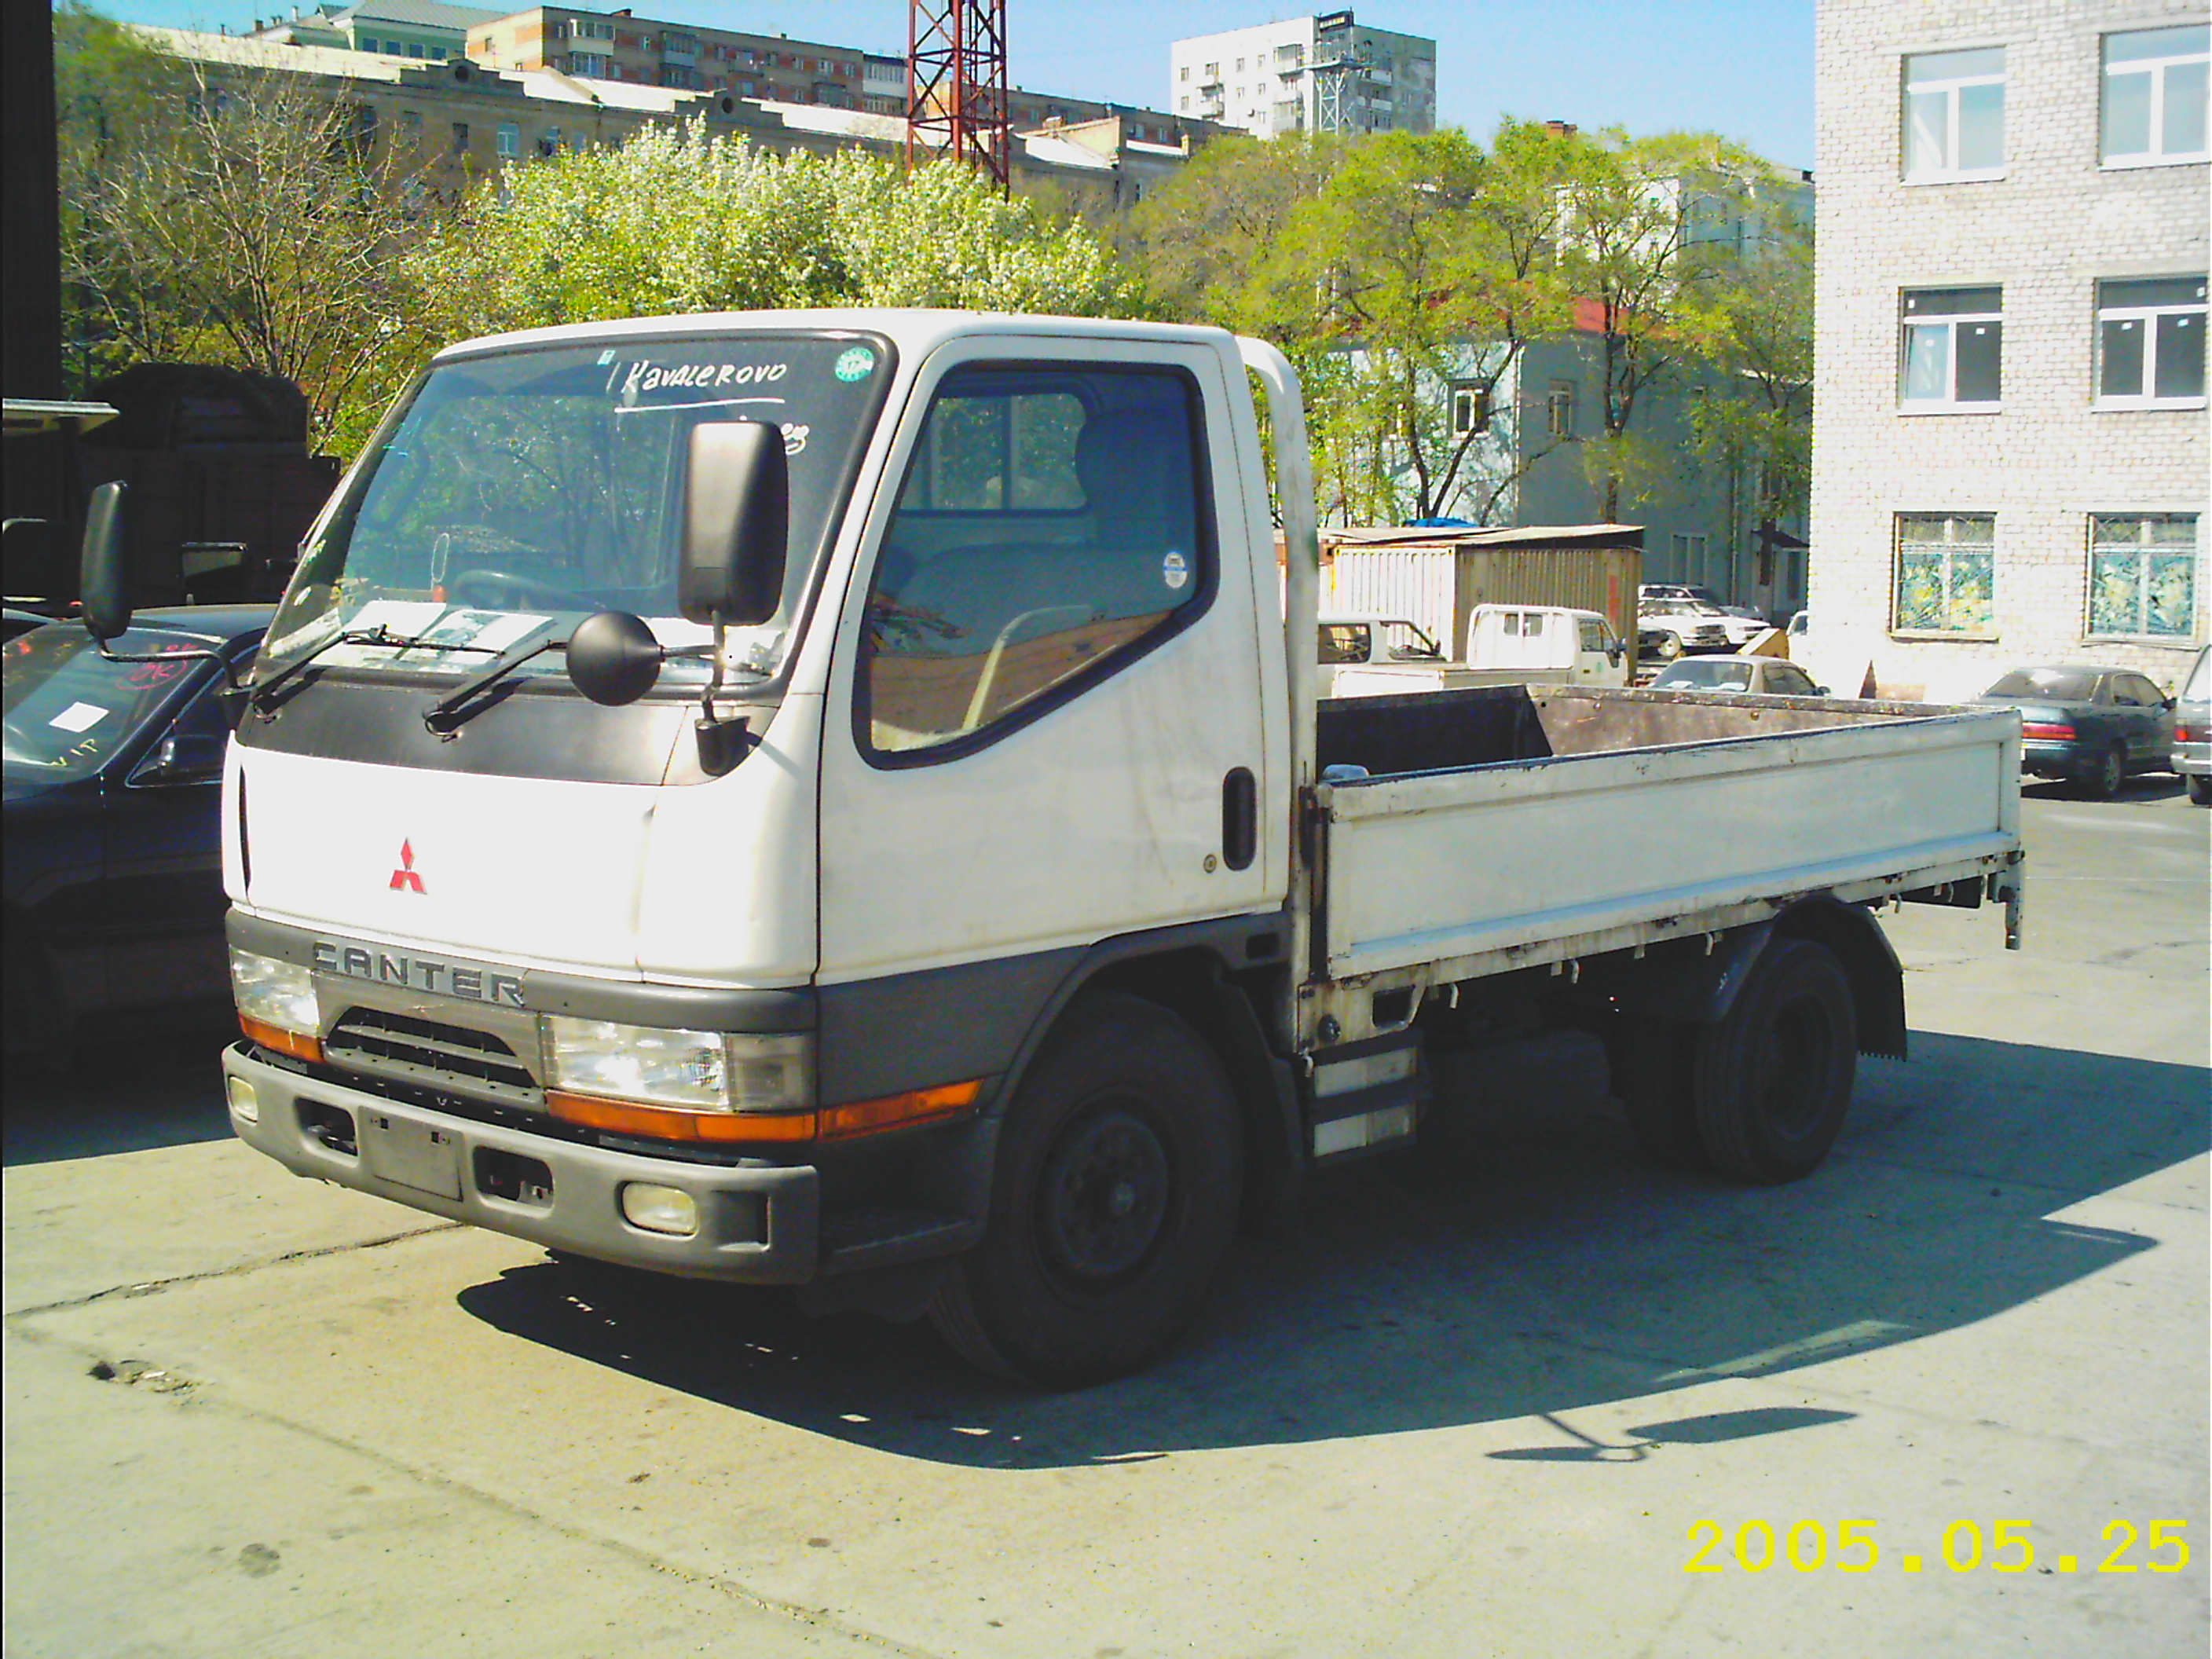 Canter truck sale double cabin 4wd japan import jpn car - 1997 Mitsubishi Canter